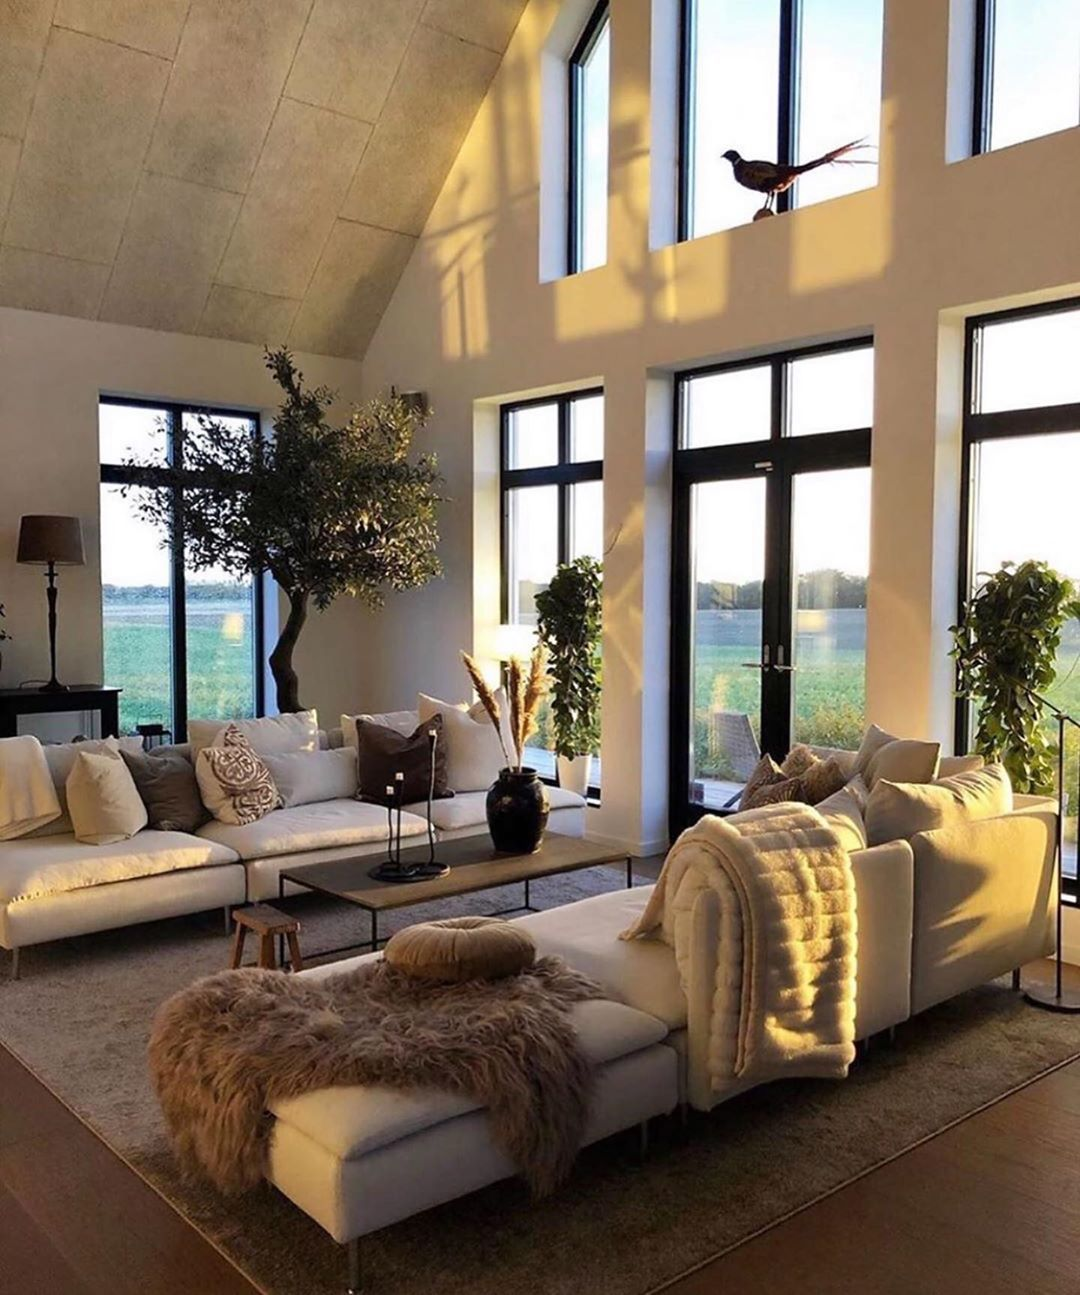 Olivia Jent Interior Design On Instagram Imagine Watching A Sunset From These Windows Husdr Dream Home Design Dream Living Rooms House Styles